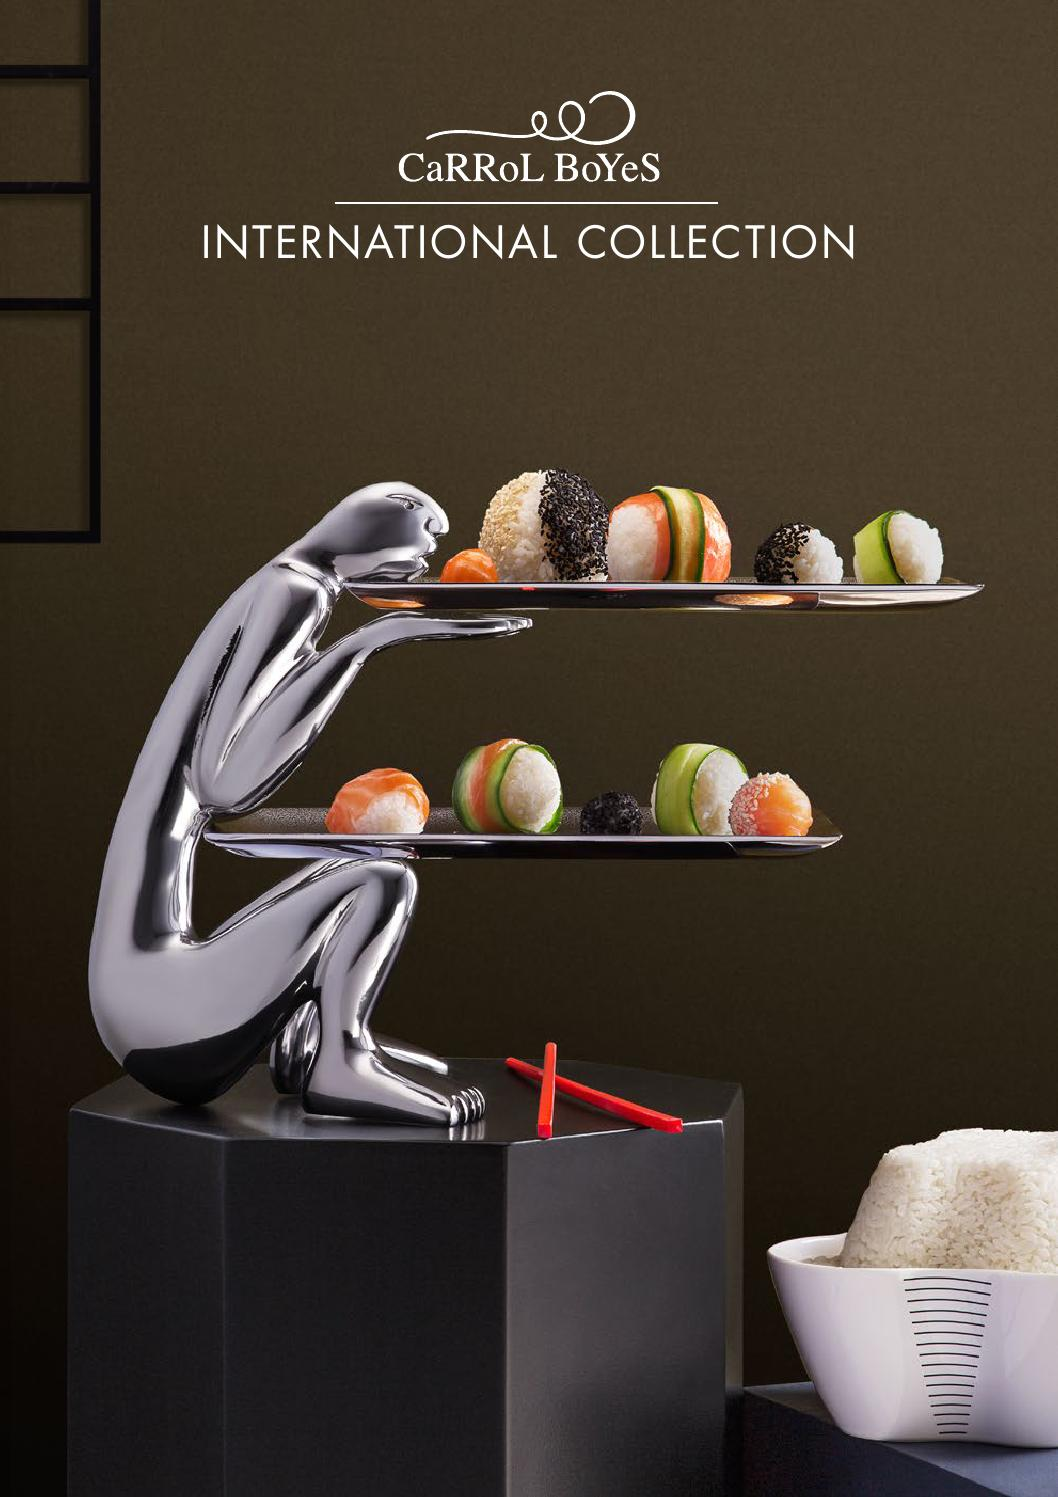 Chrome Door Handles >> Carrol Boyes - International Collection: Edition 1 by ...